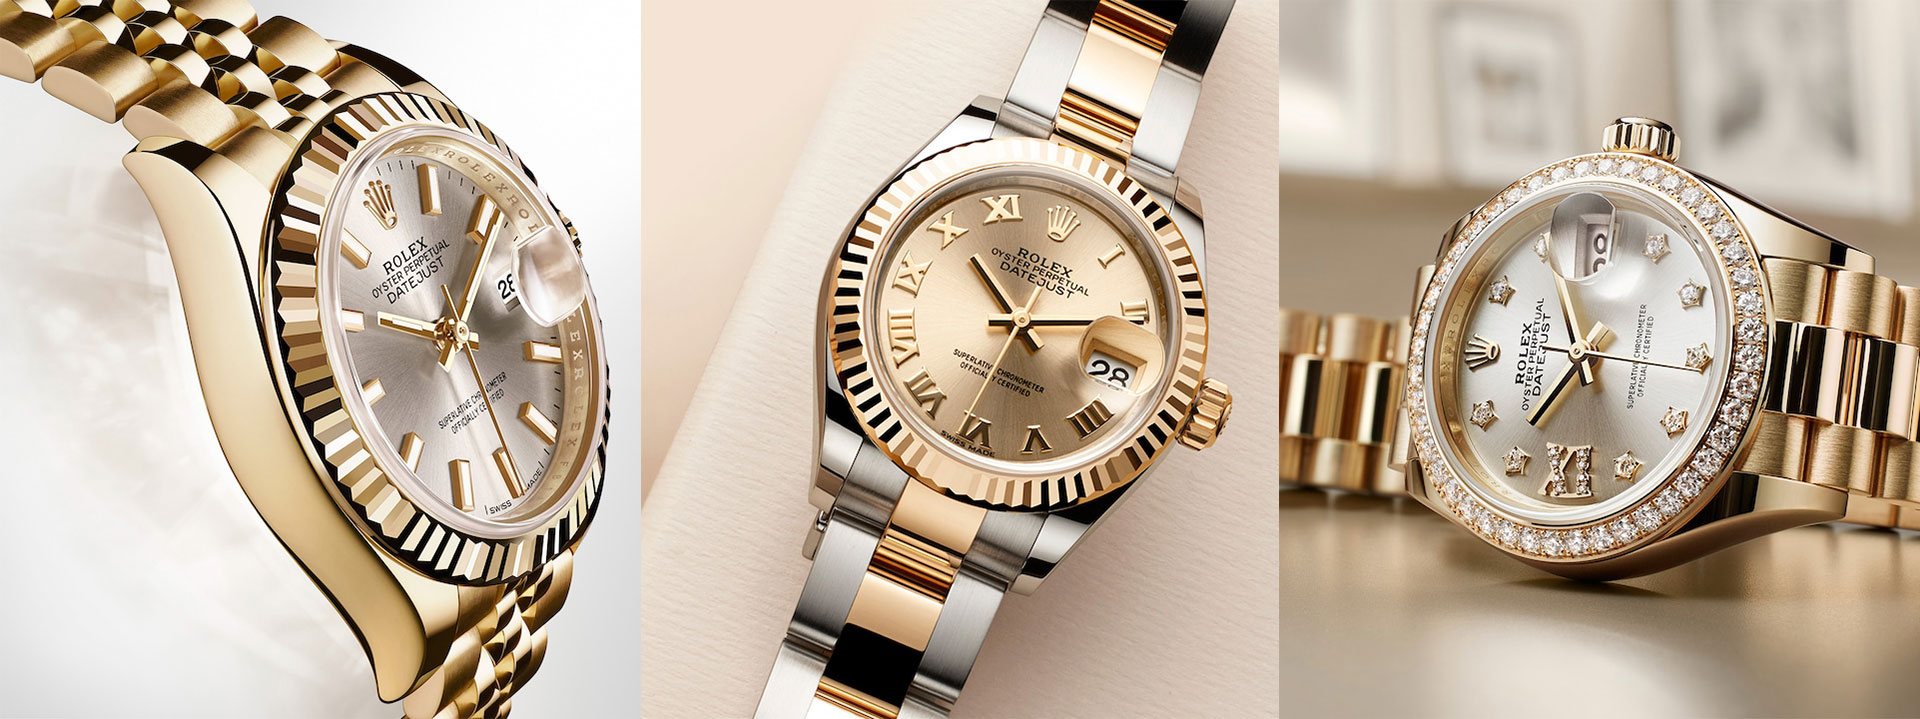 lady-datejust-4